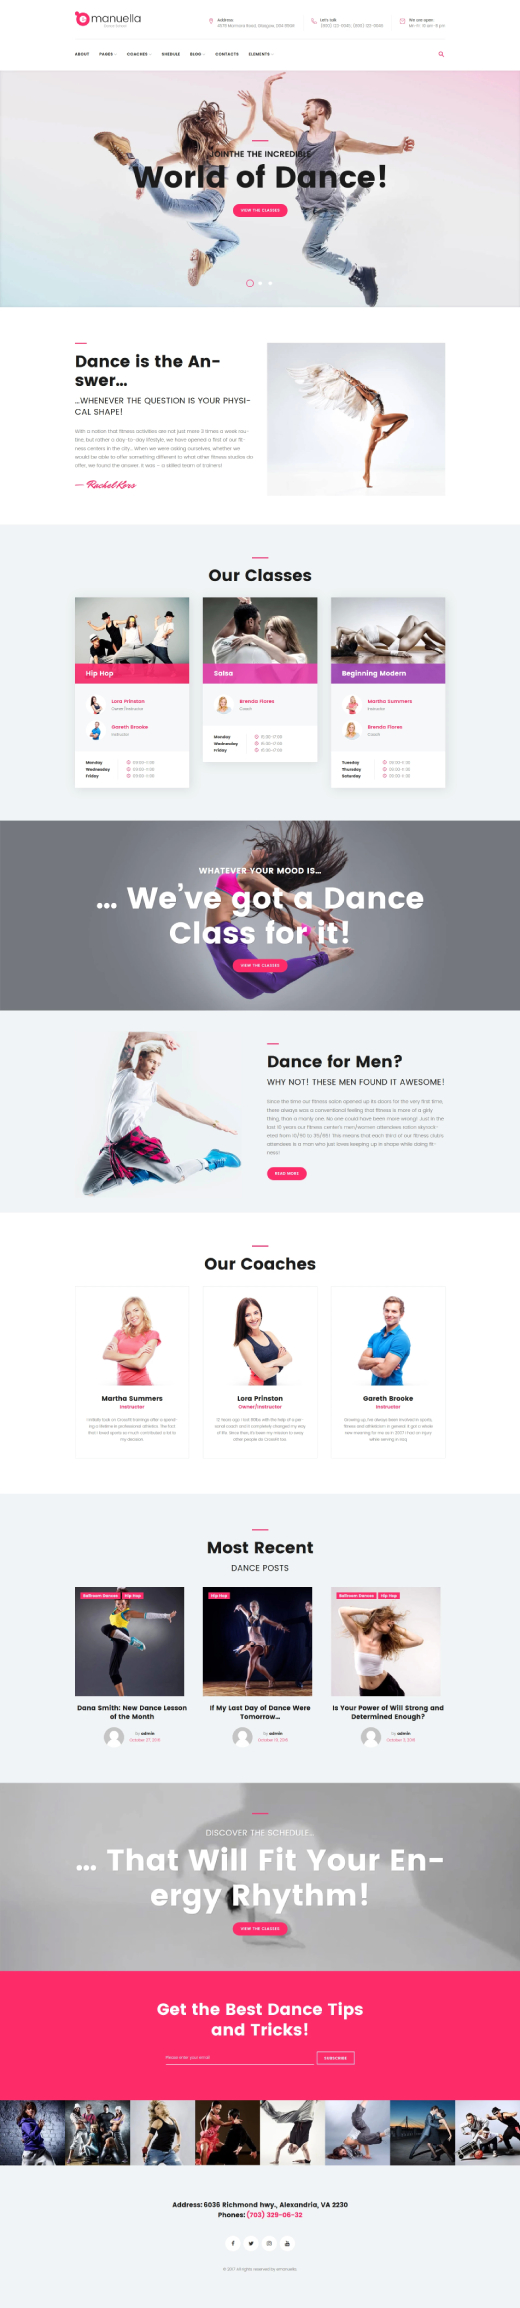 Emanuella - Dance School Responsive WordPress Theme